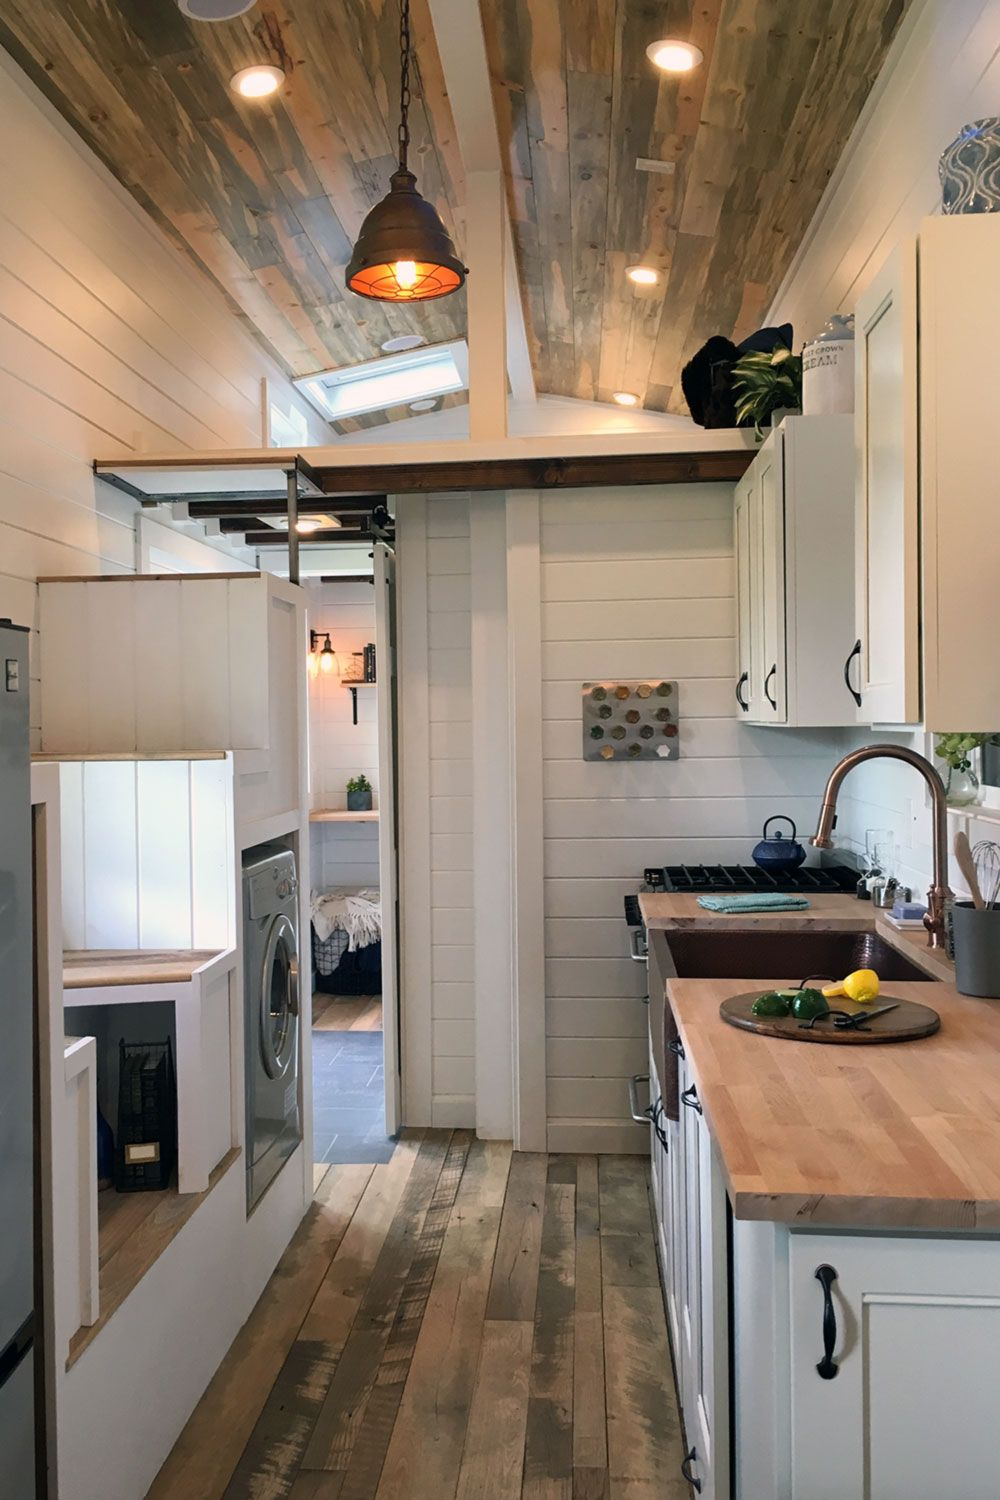 The sapphire house from tiny heirloom tiny house town - Rocky Mountain By Tiny Heirloom